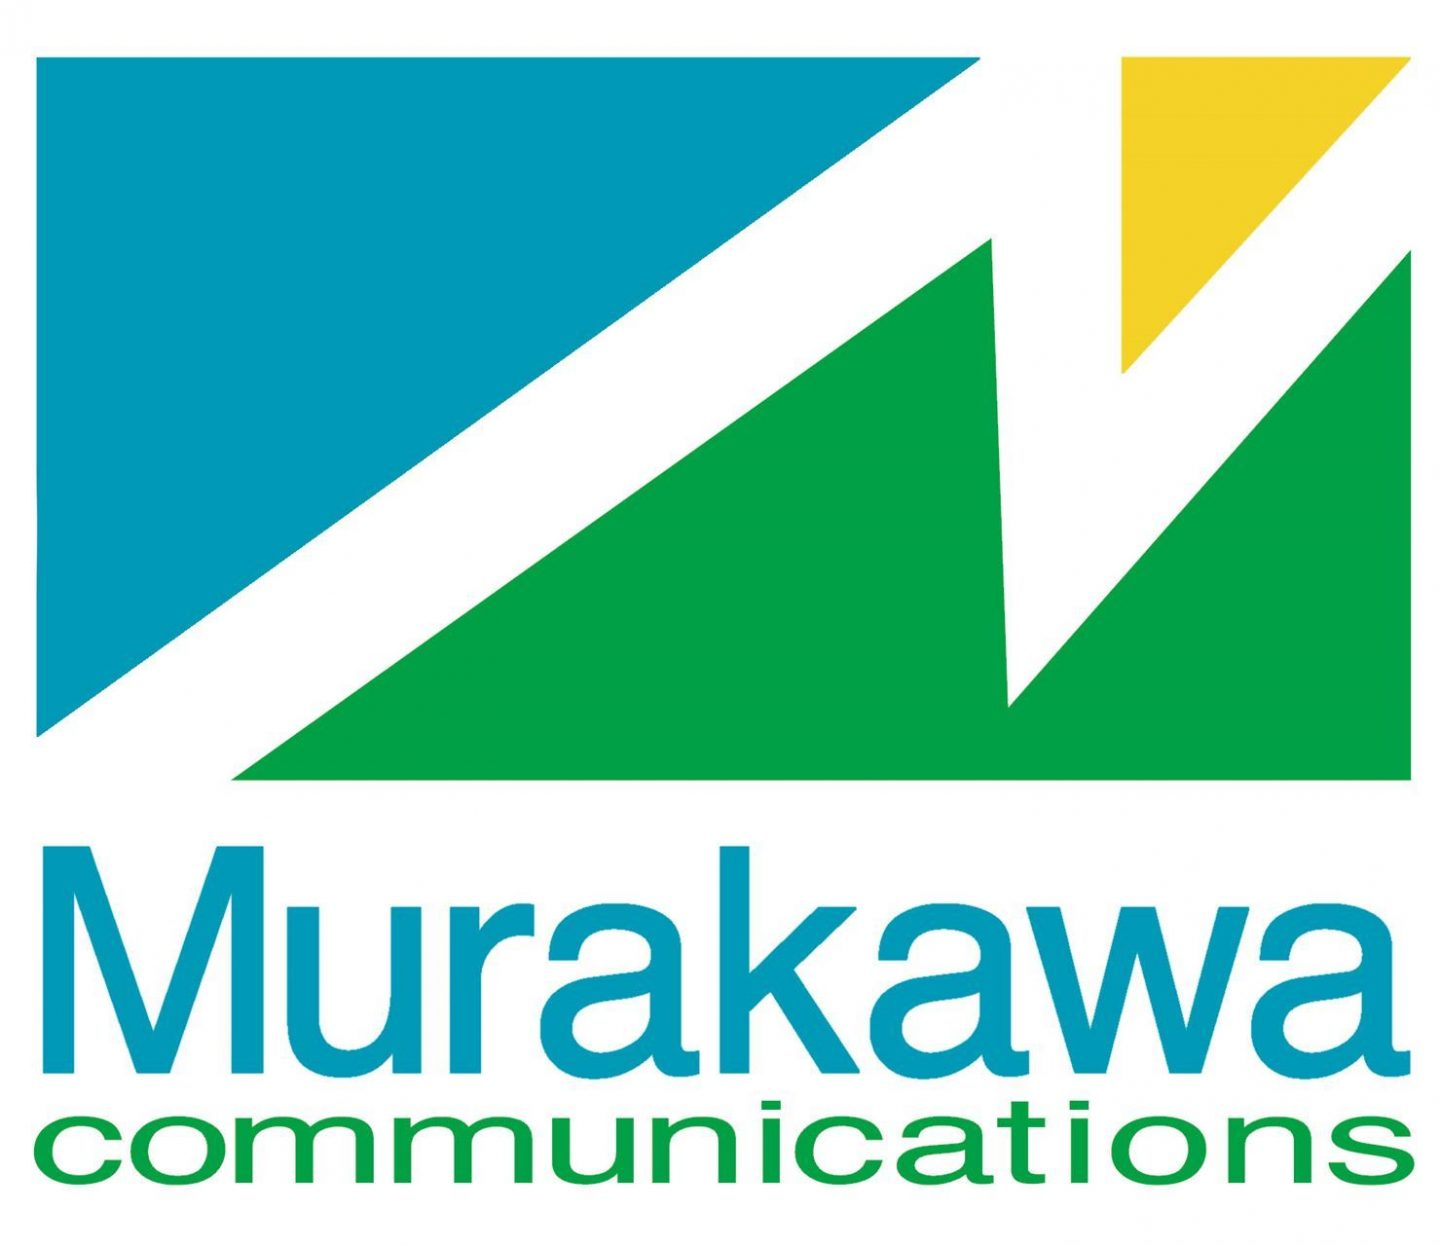 Murakawa Communications